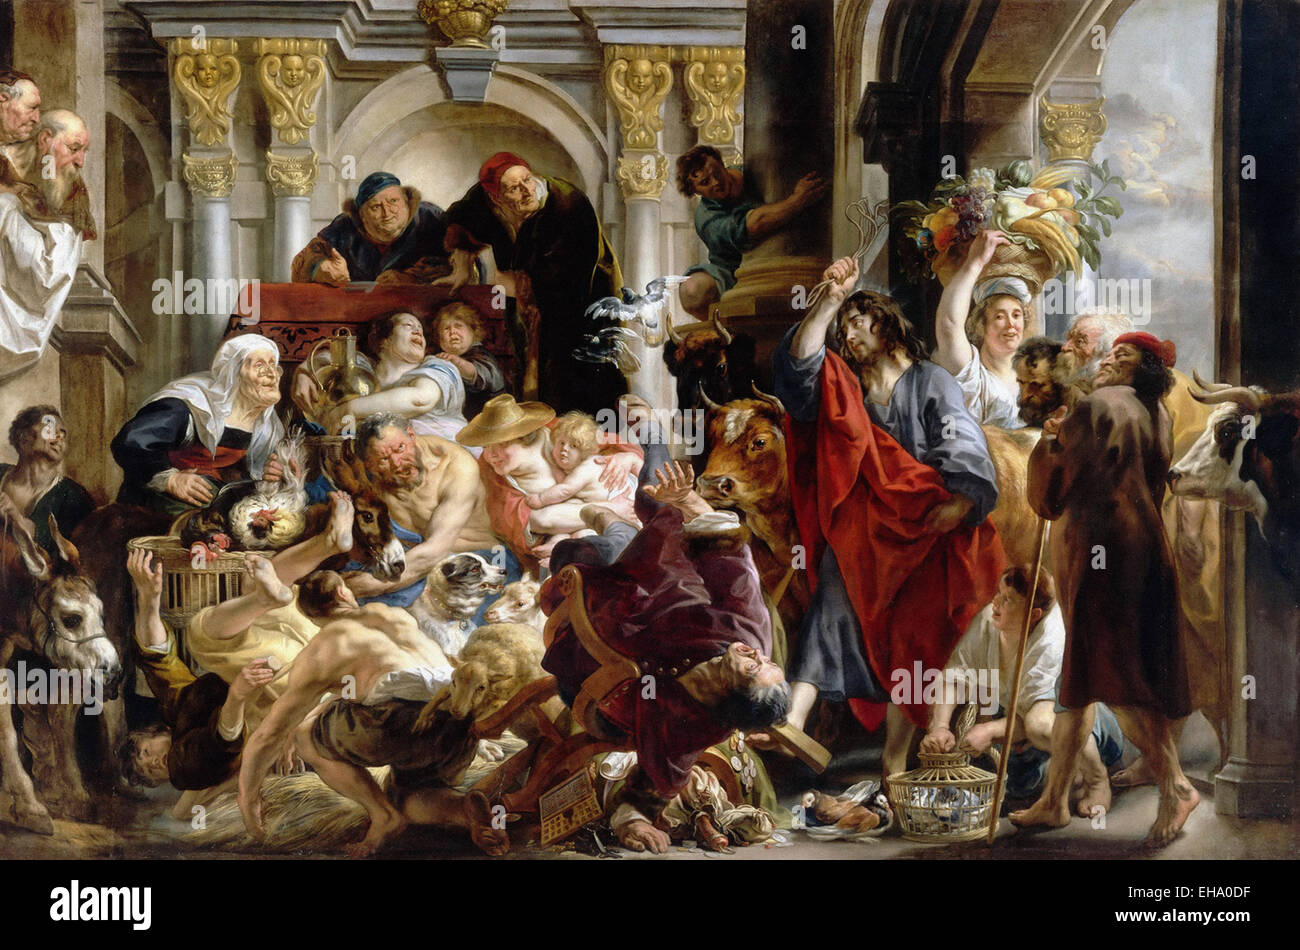 Jacob Jordaens  Jesus Driving the Merchants from the Temple - Stock Image